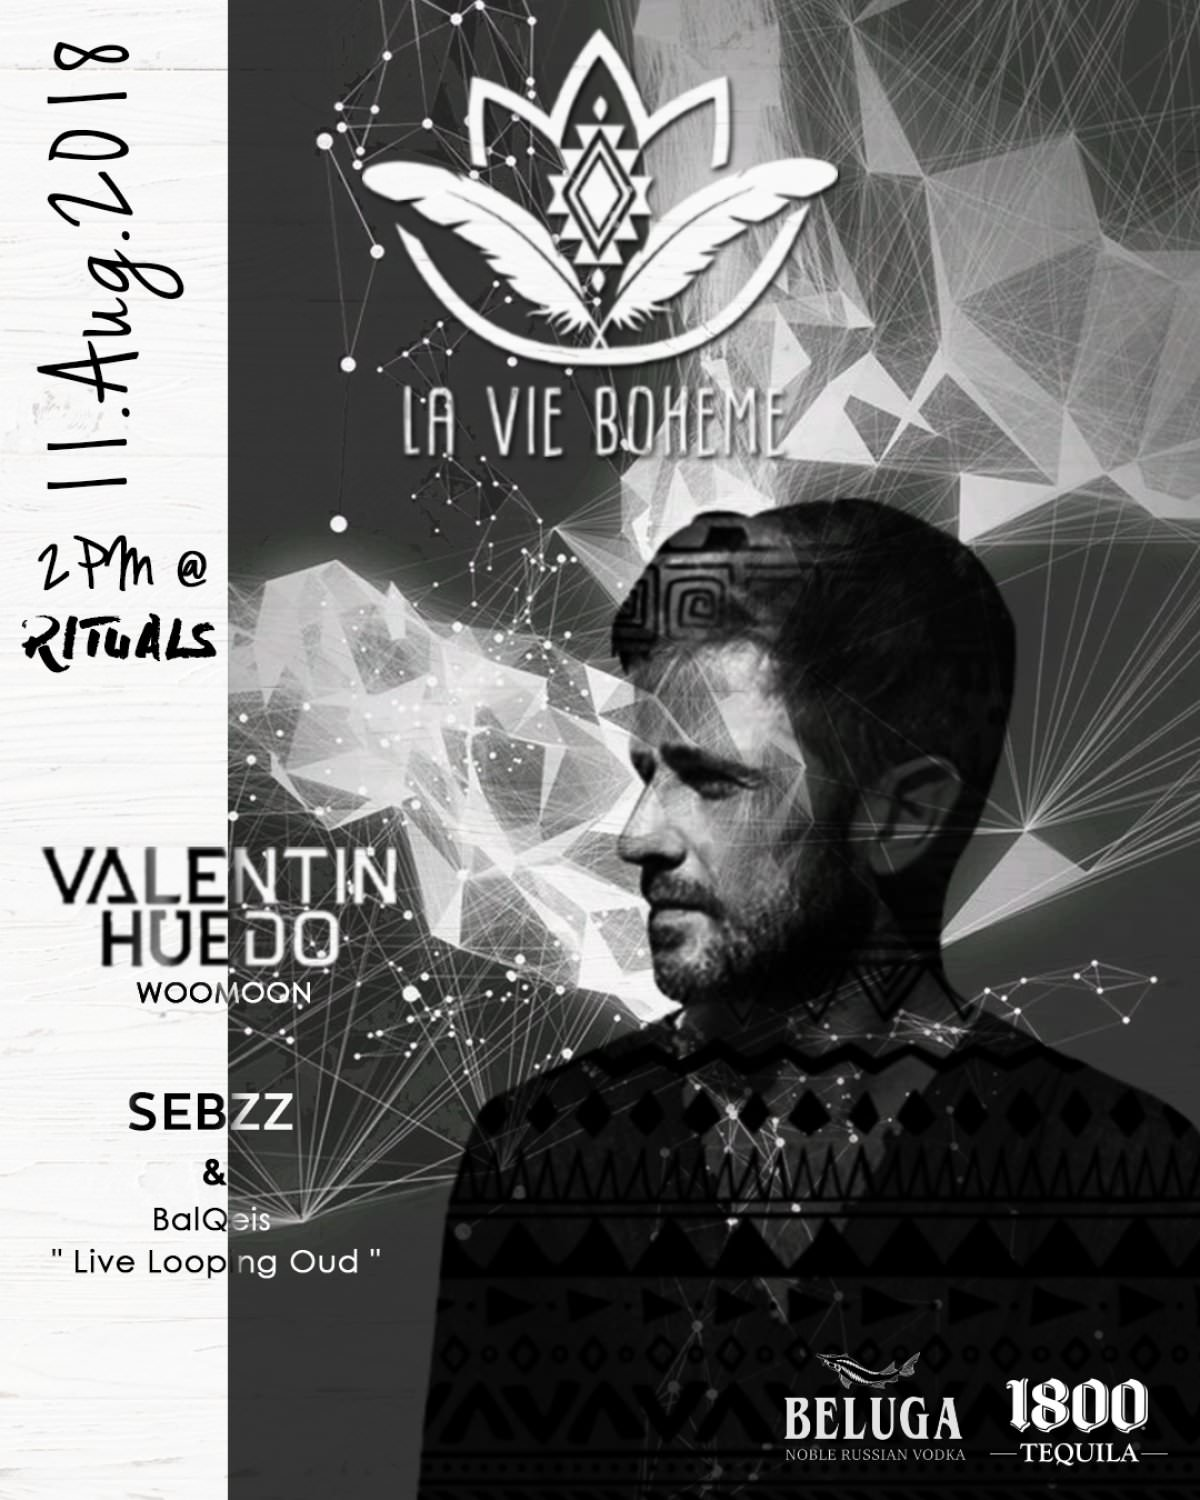 VALENTIN HUEDO at RITUALS (Egypt) August 11th